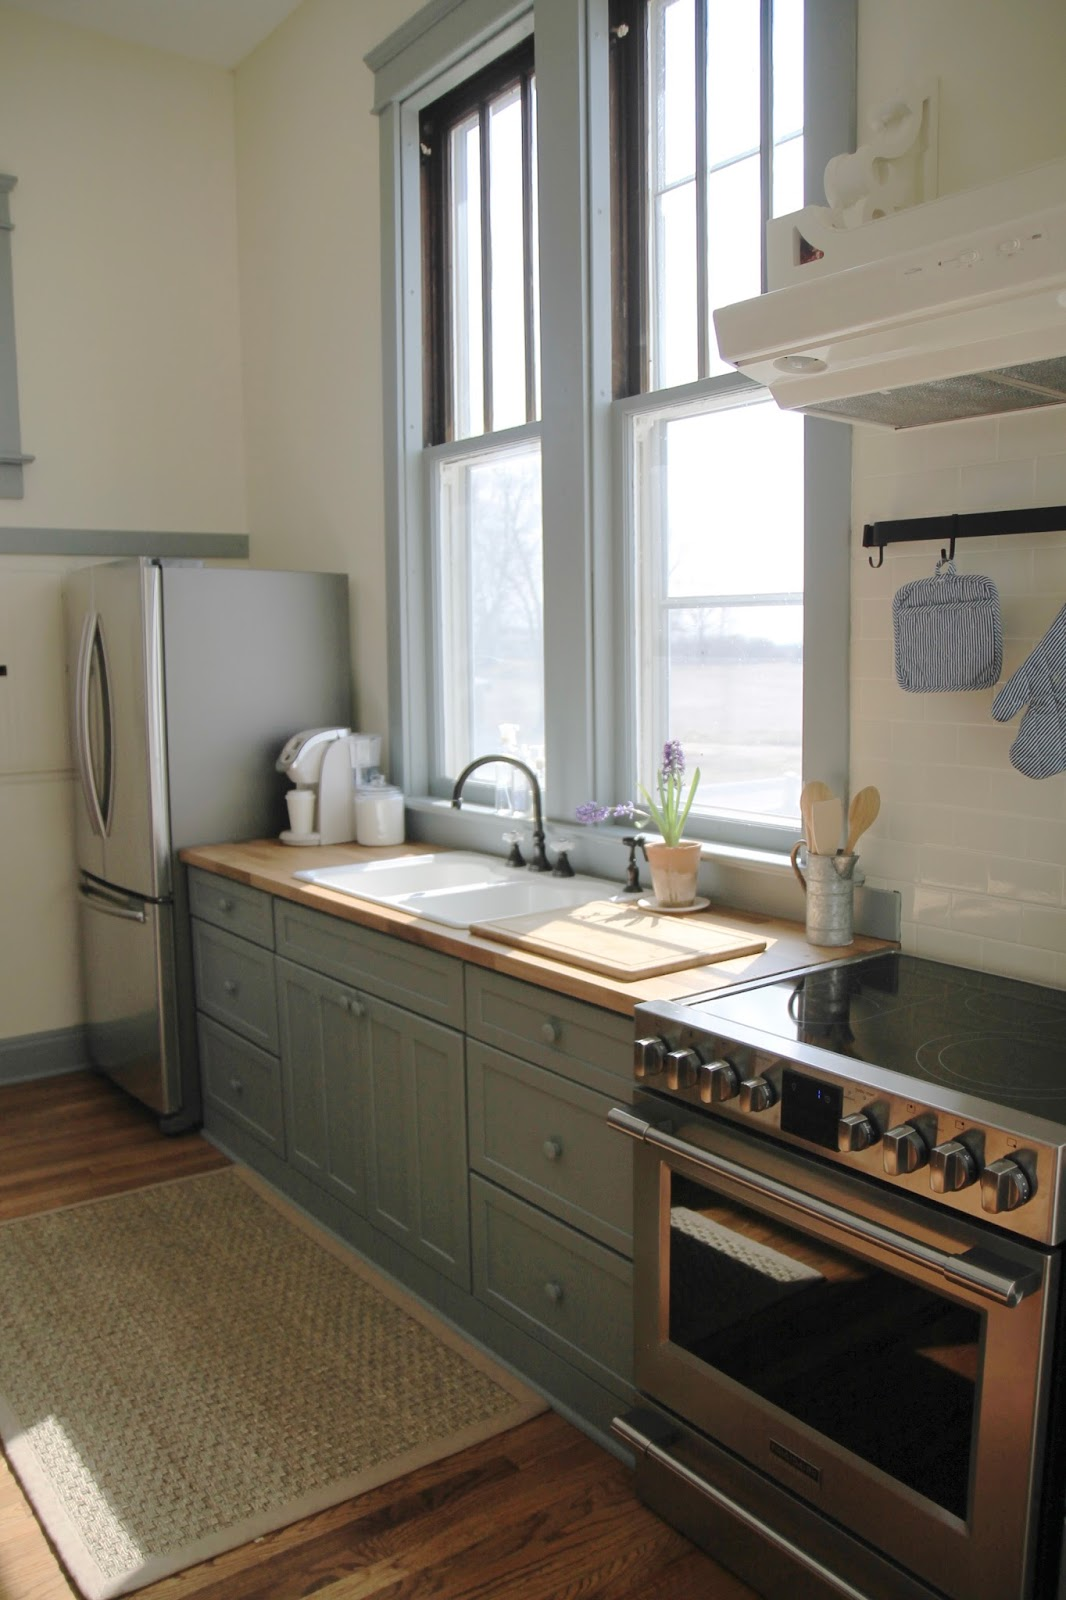 The School House Kitchen | Blue Painted Cabinets